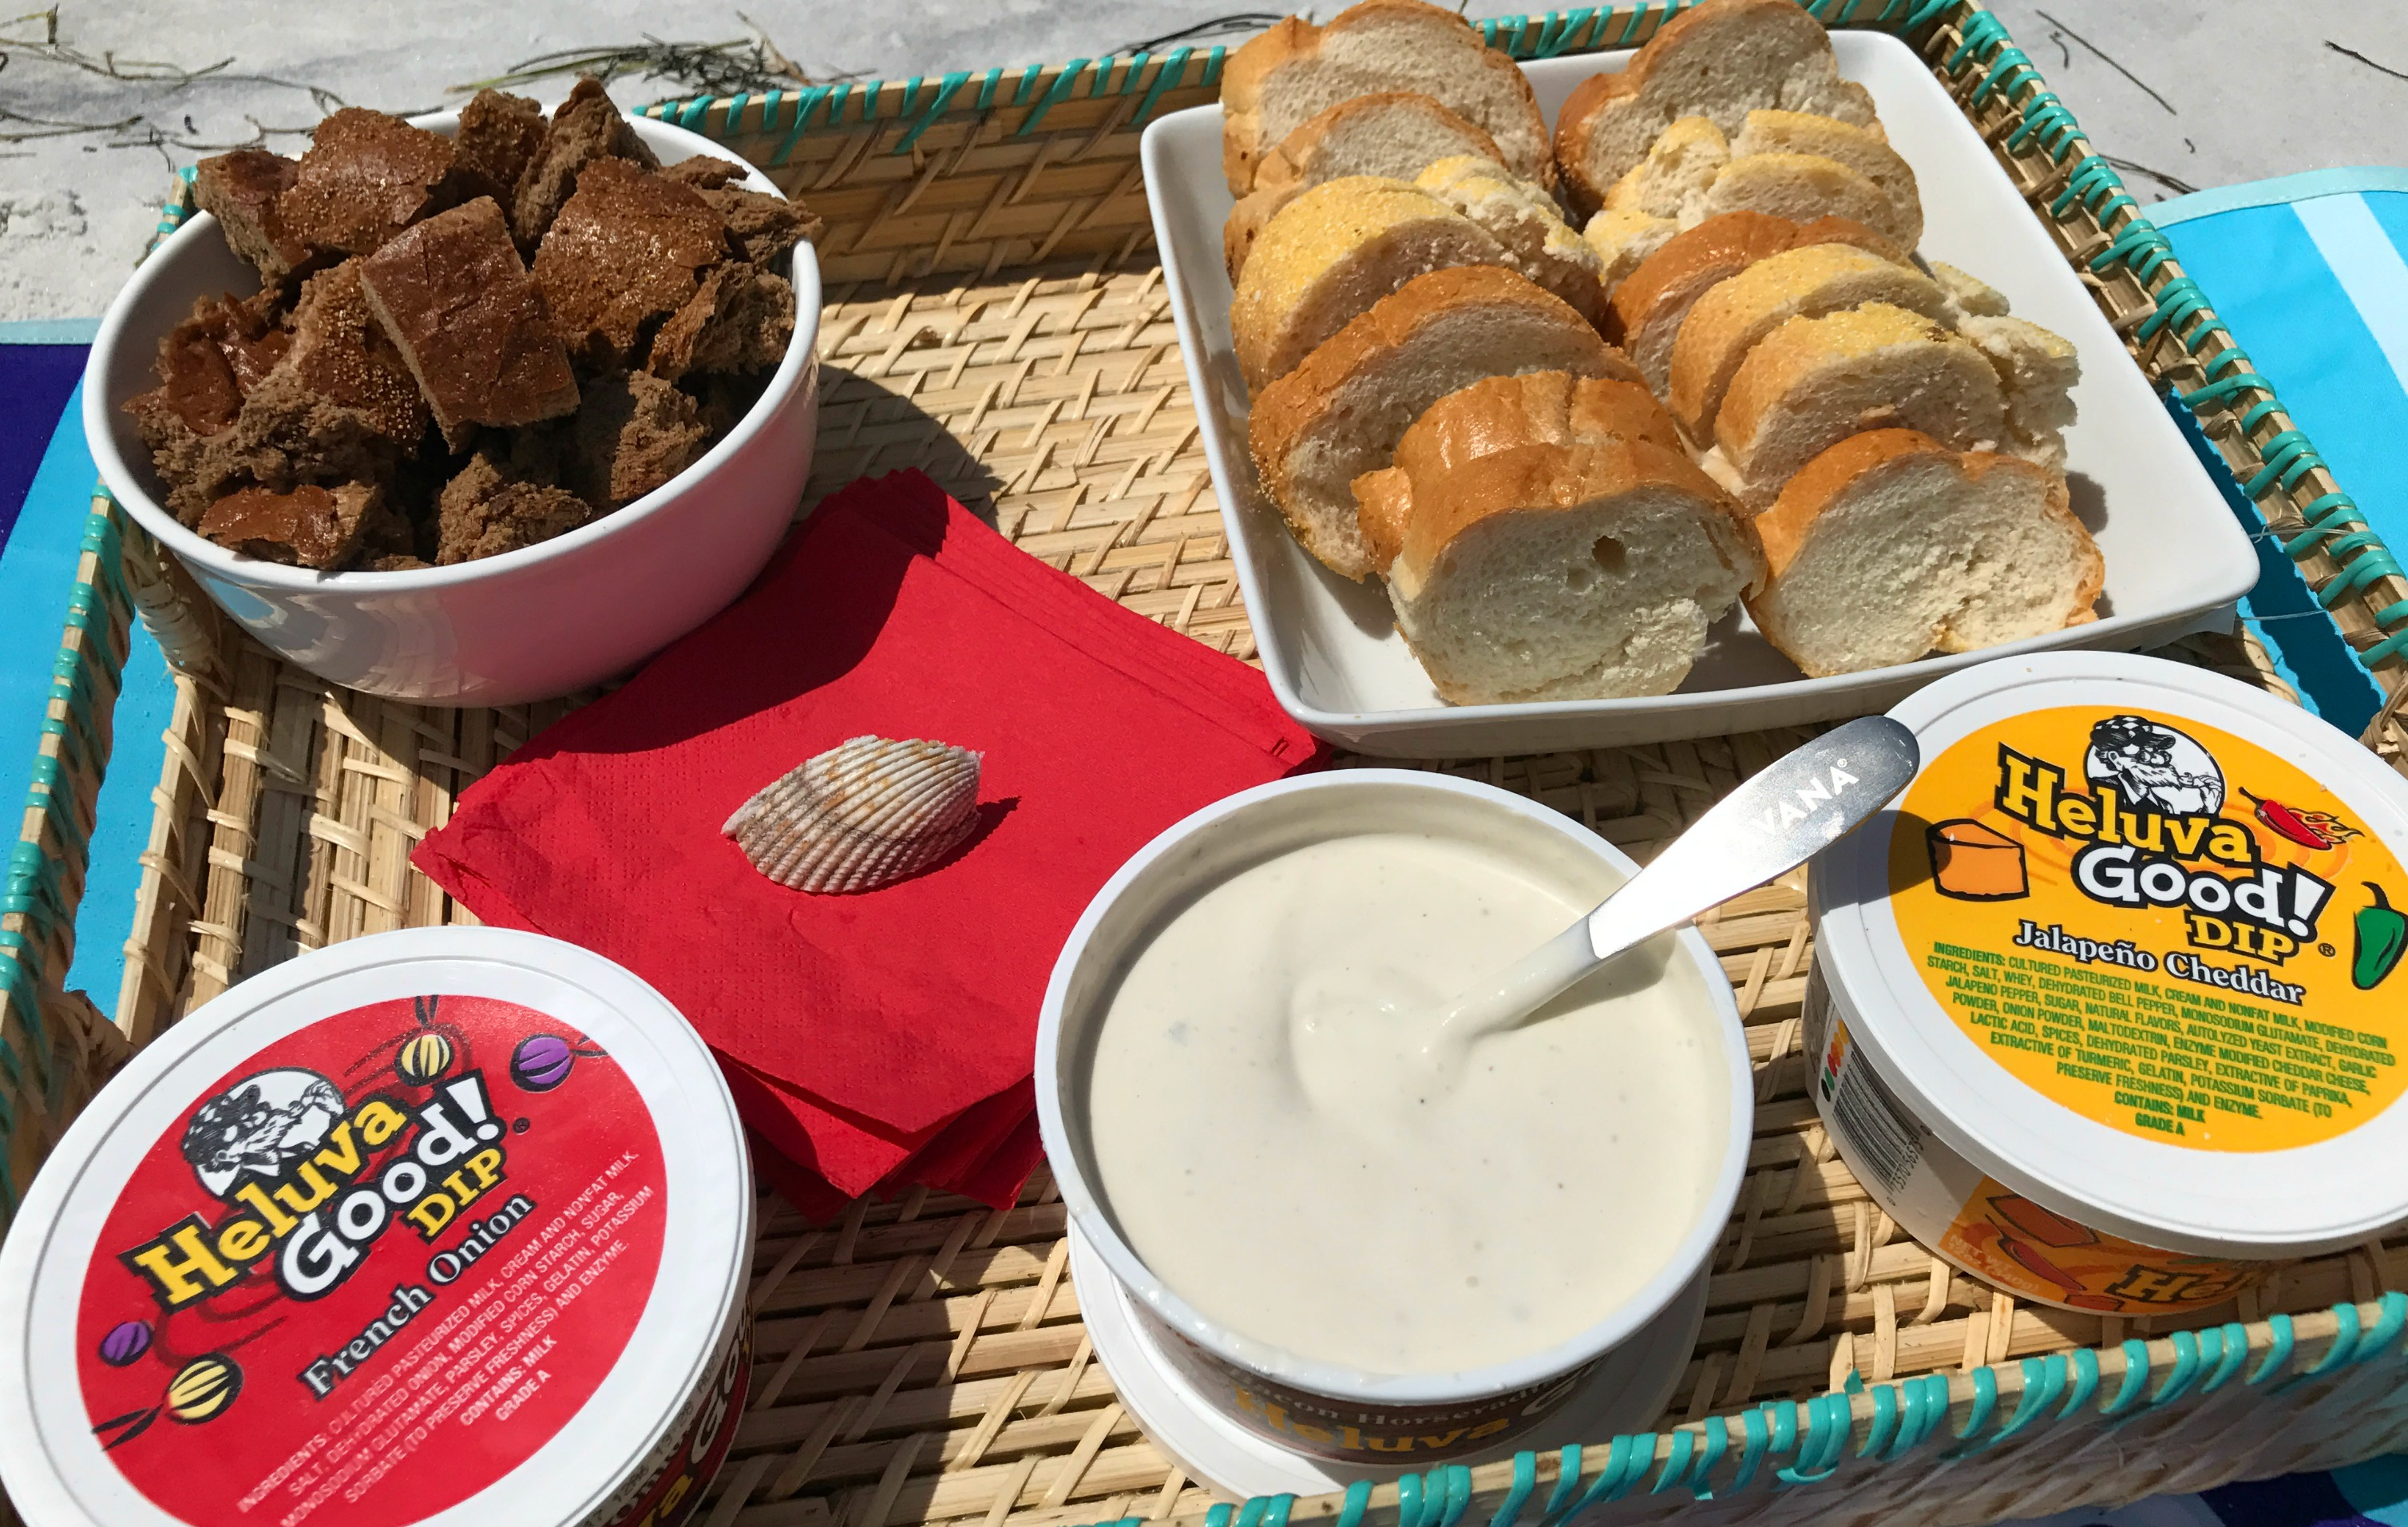 Flavored-dip-party-snacks